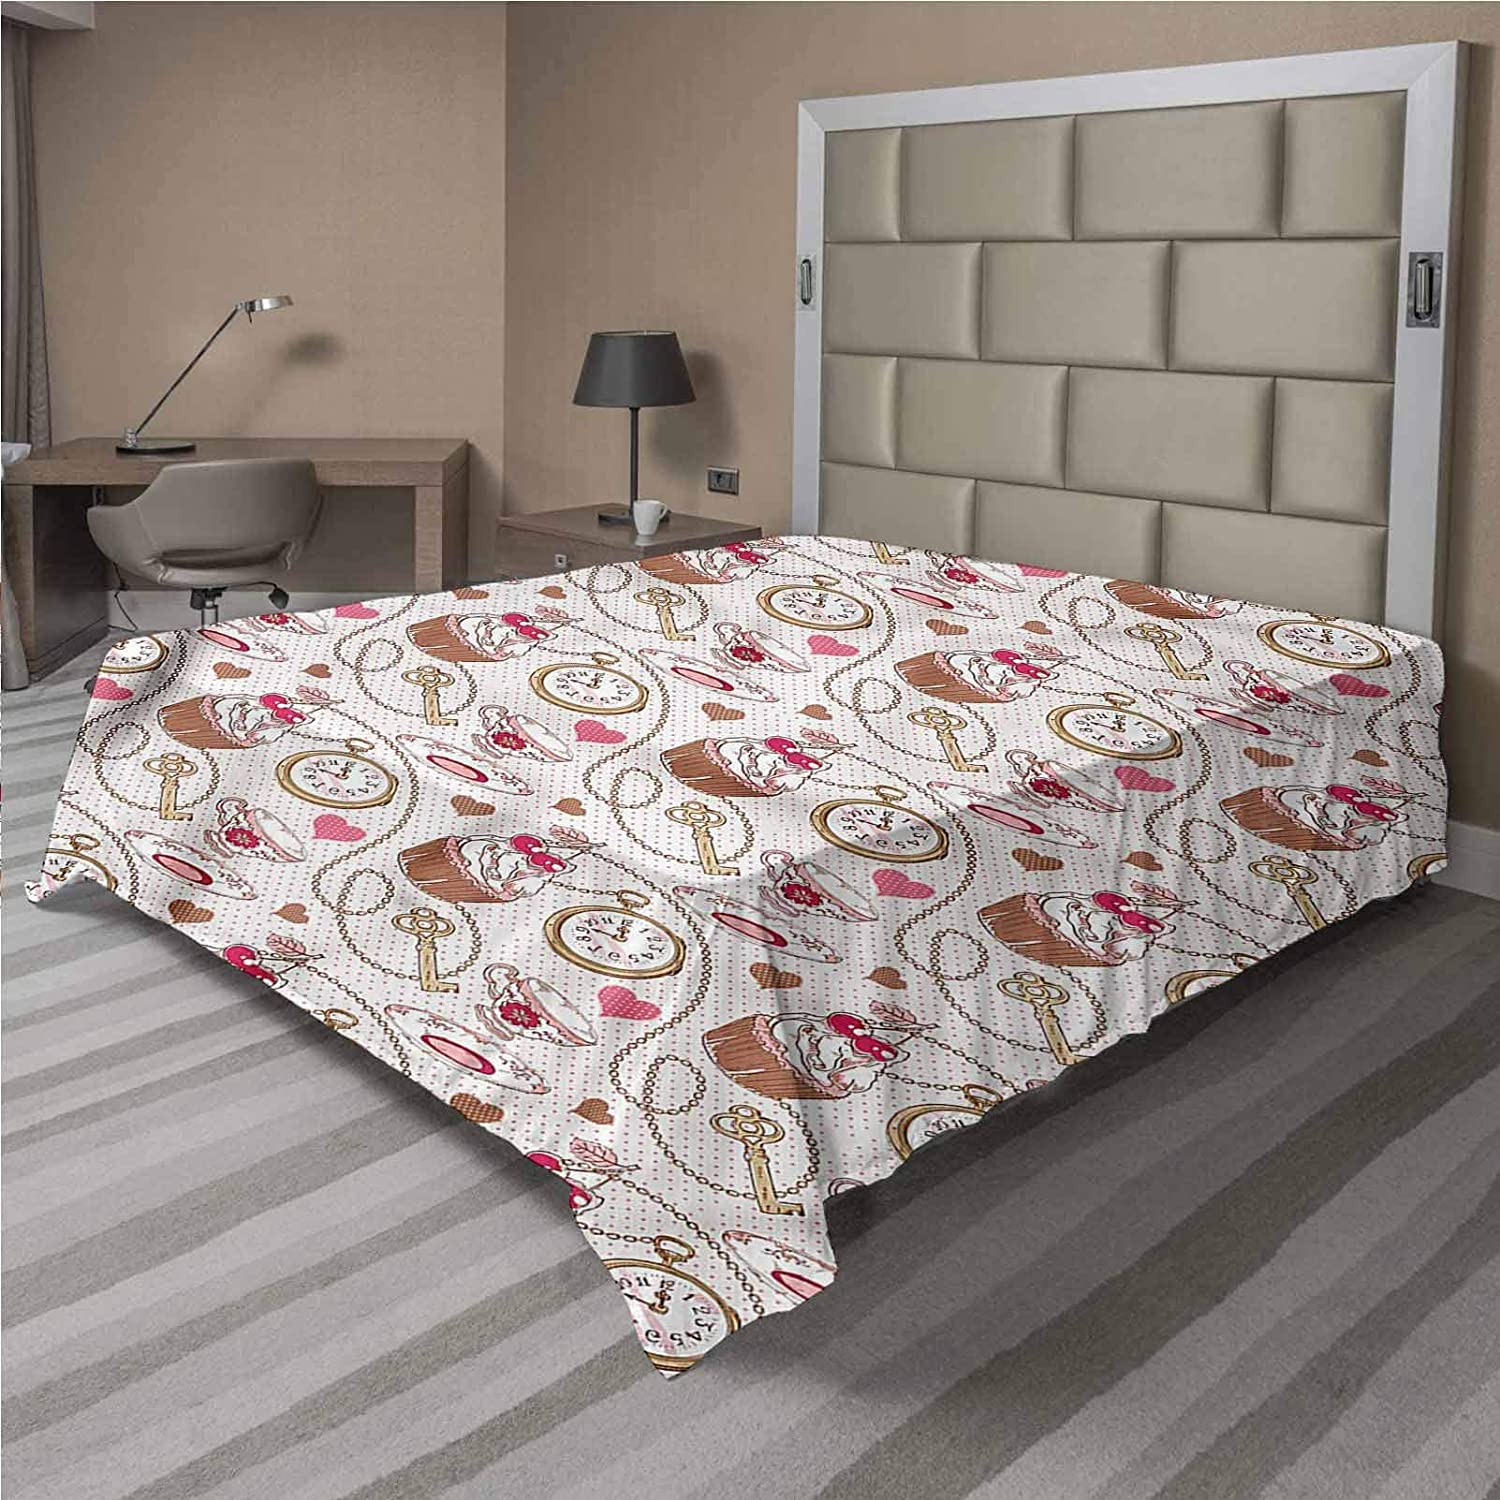 LCGGDB Clock Flat Top Sheet,Cherry Cupcake Cup of Tea Soft Comfortable Top Sheet Decorative Bedding 1 Piece,Full Size,Fit for Oversize and Extra Height Full Bed